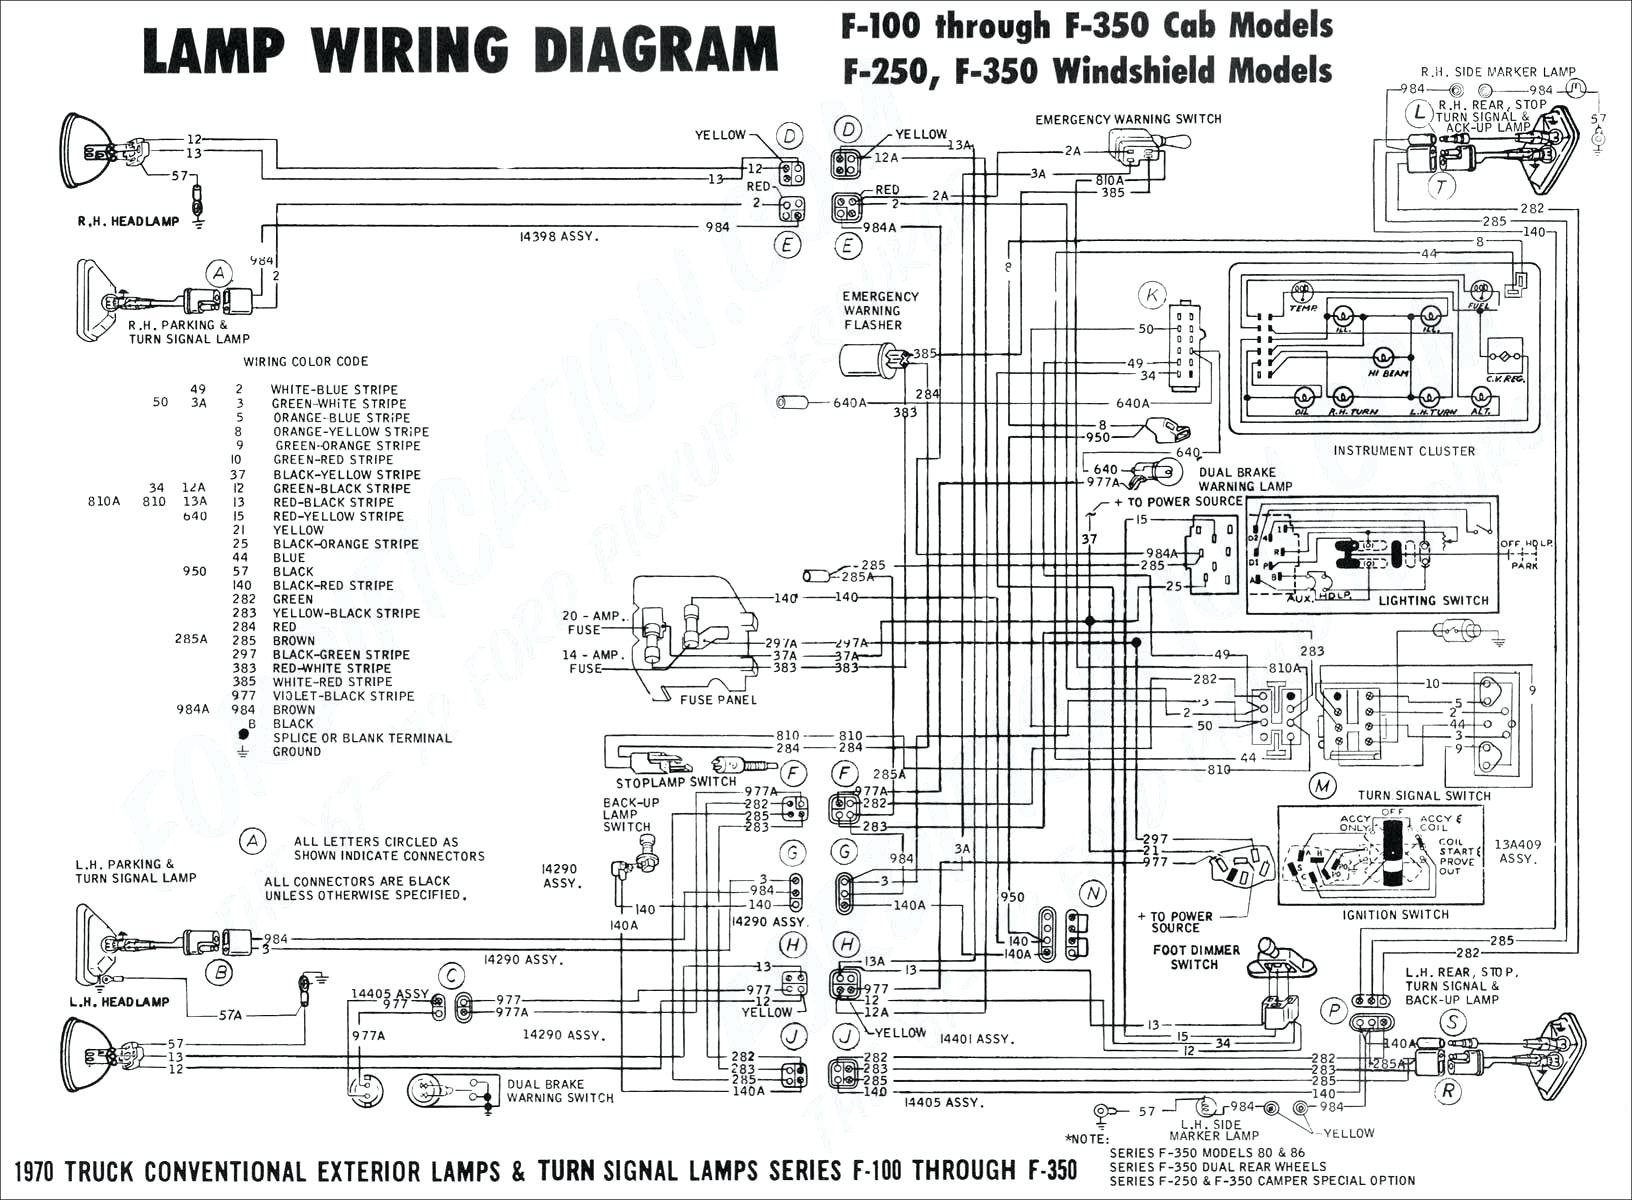 Oldsmobile Wiring Diagram Get Free Image About Free Download Wiring